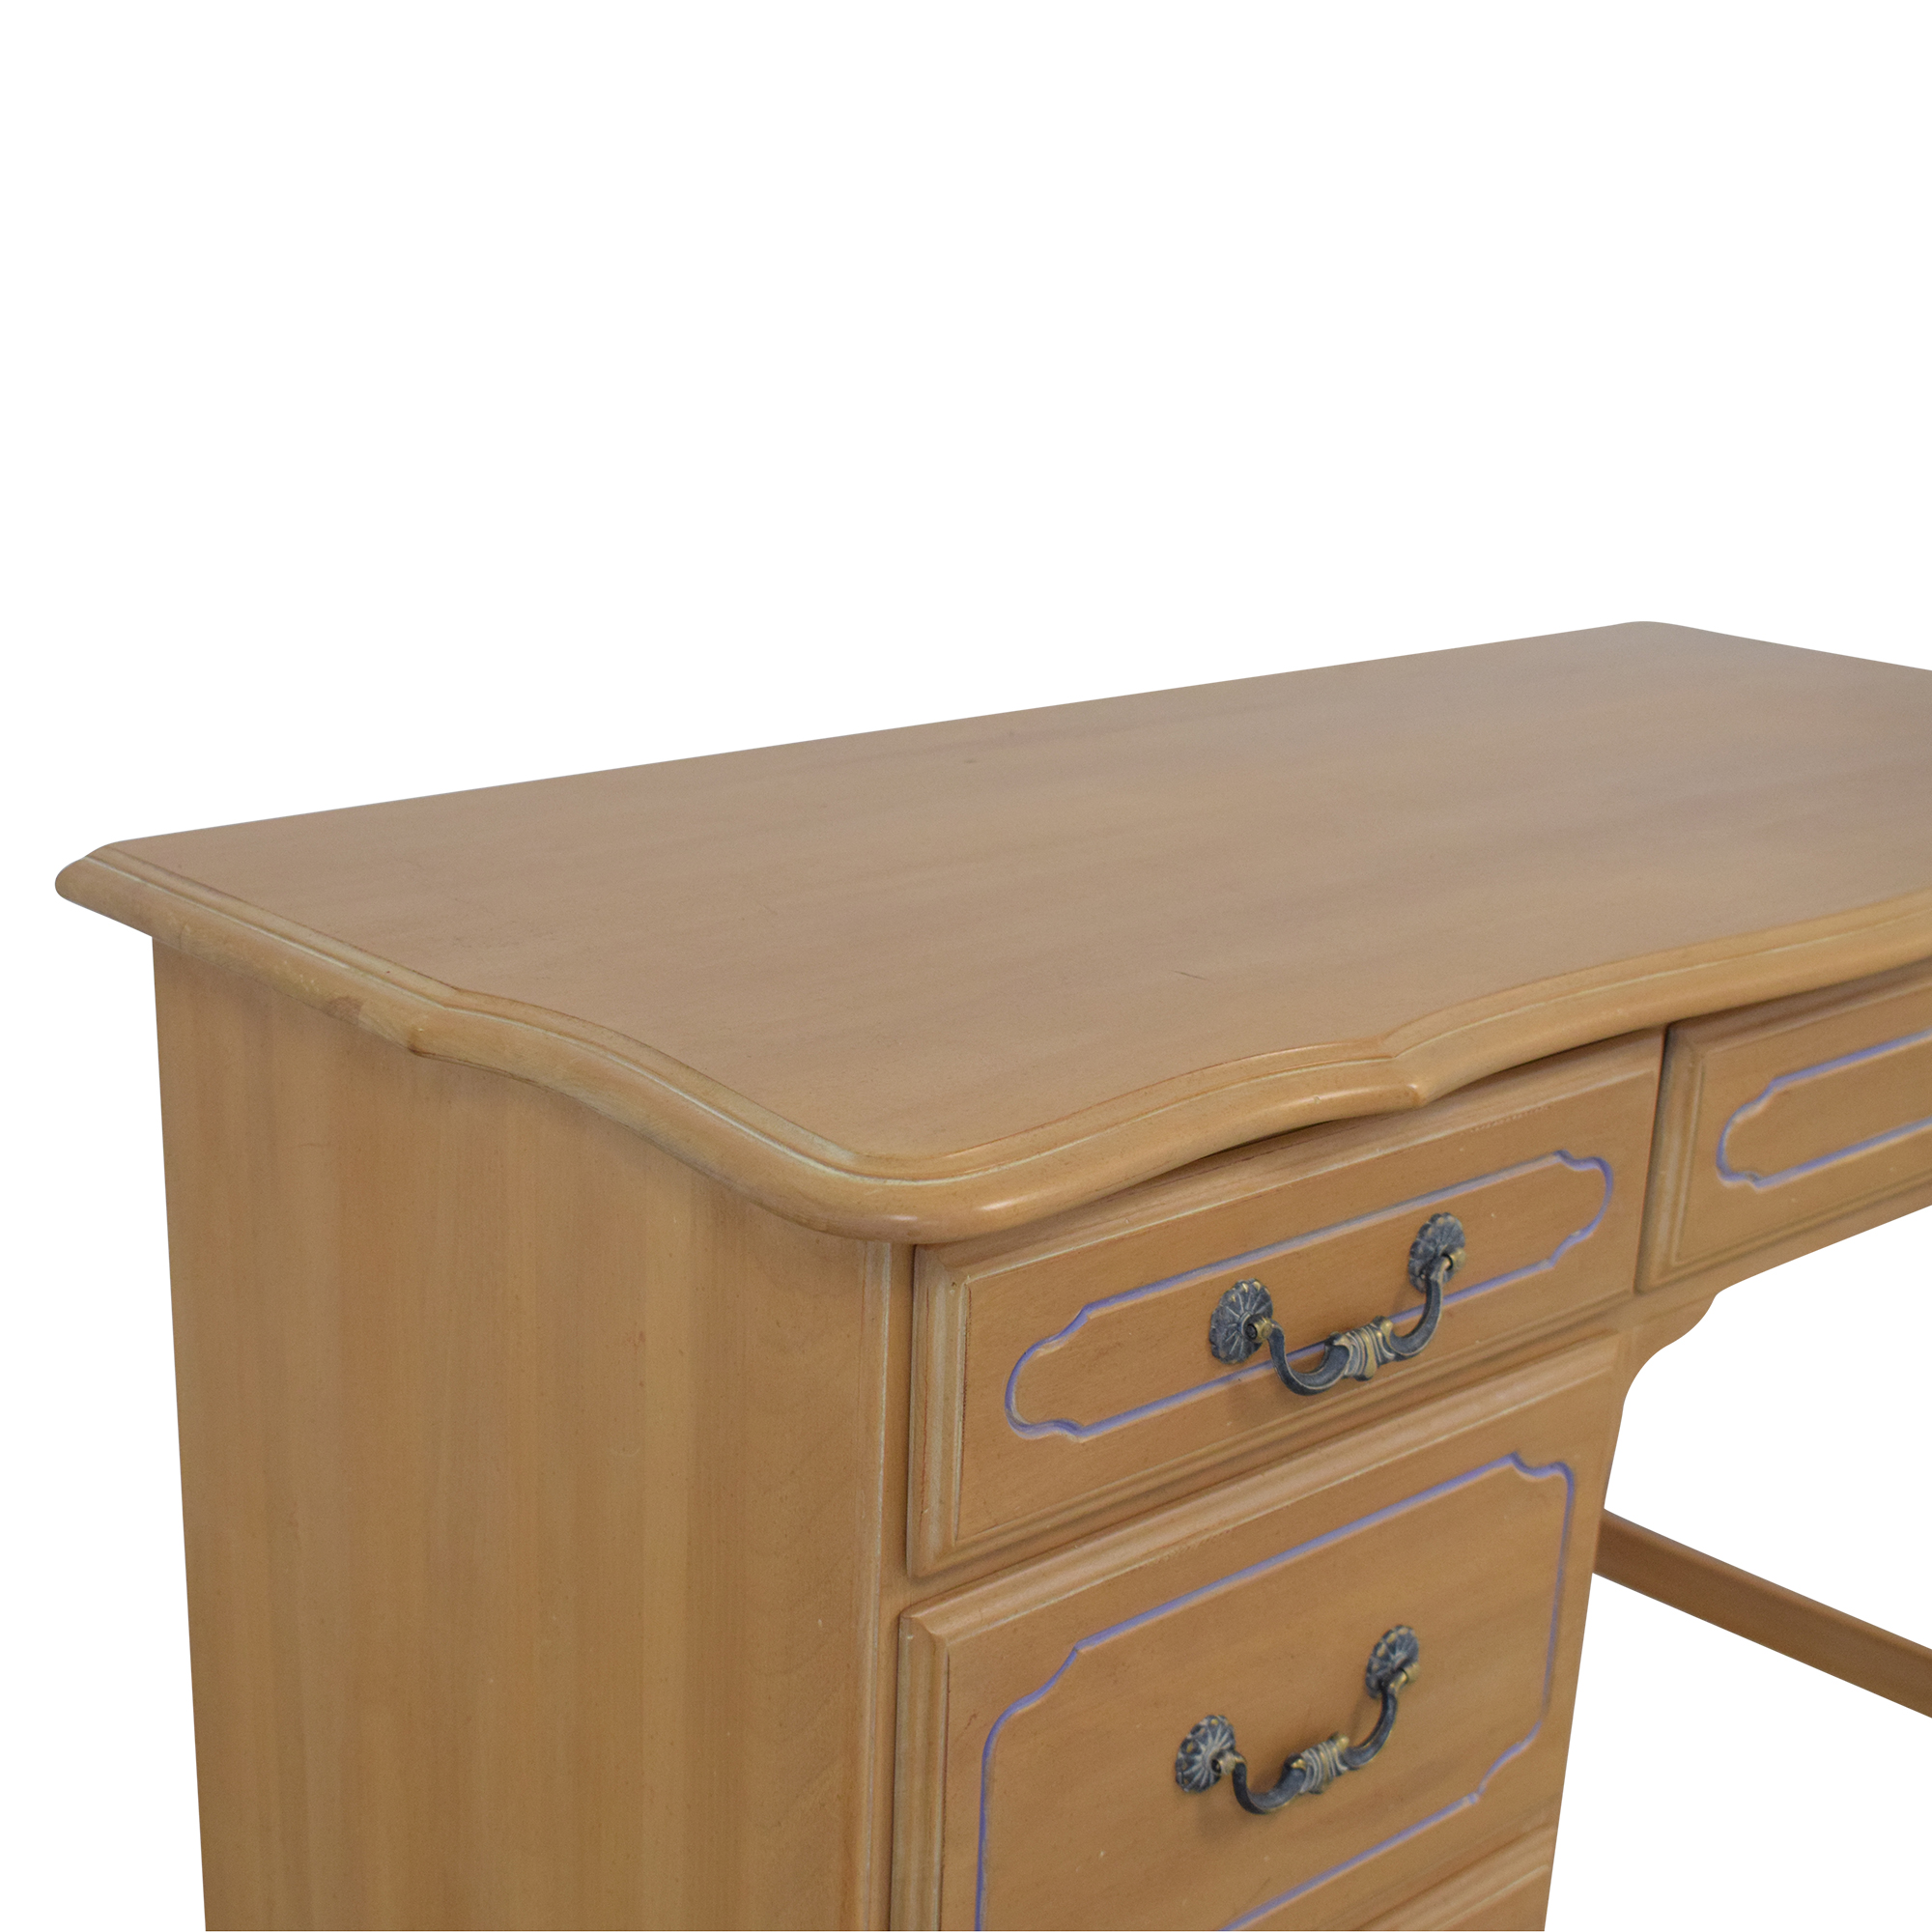 Ethan Allen Ethan Allen Traditional Desk with Drawers price